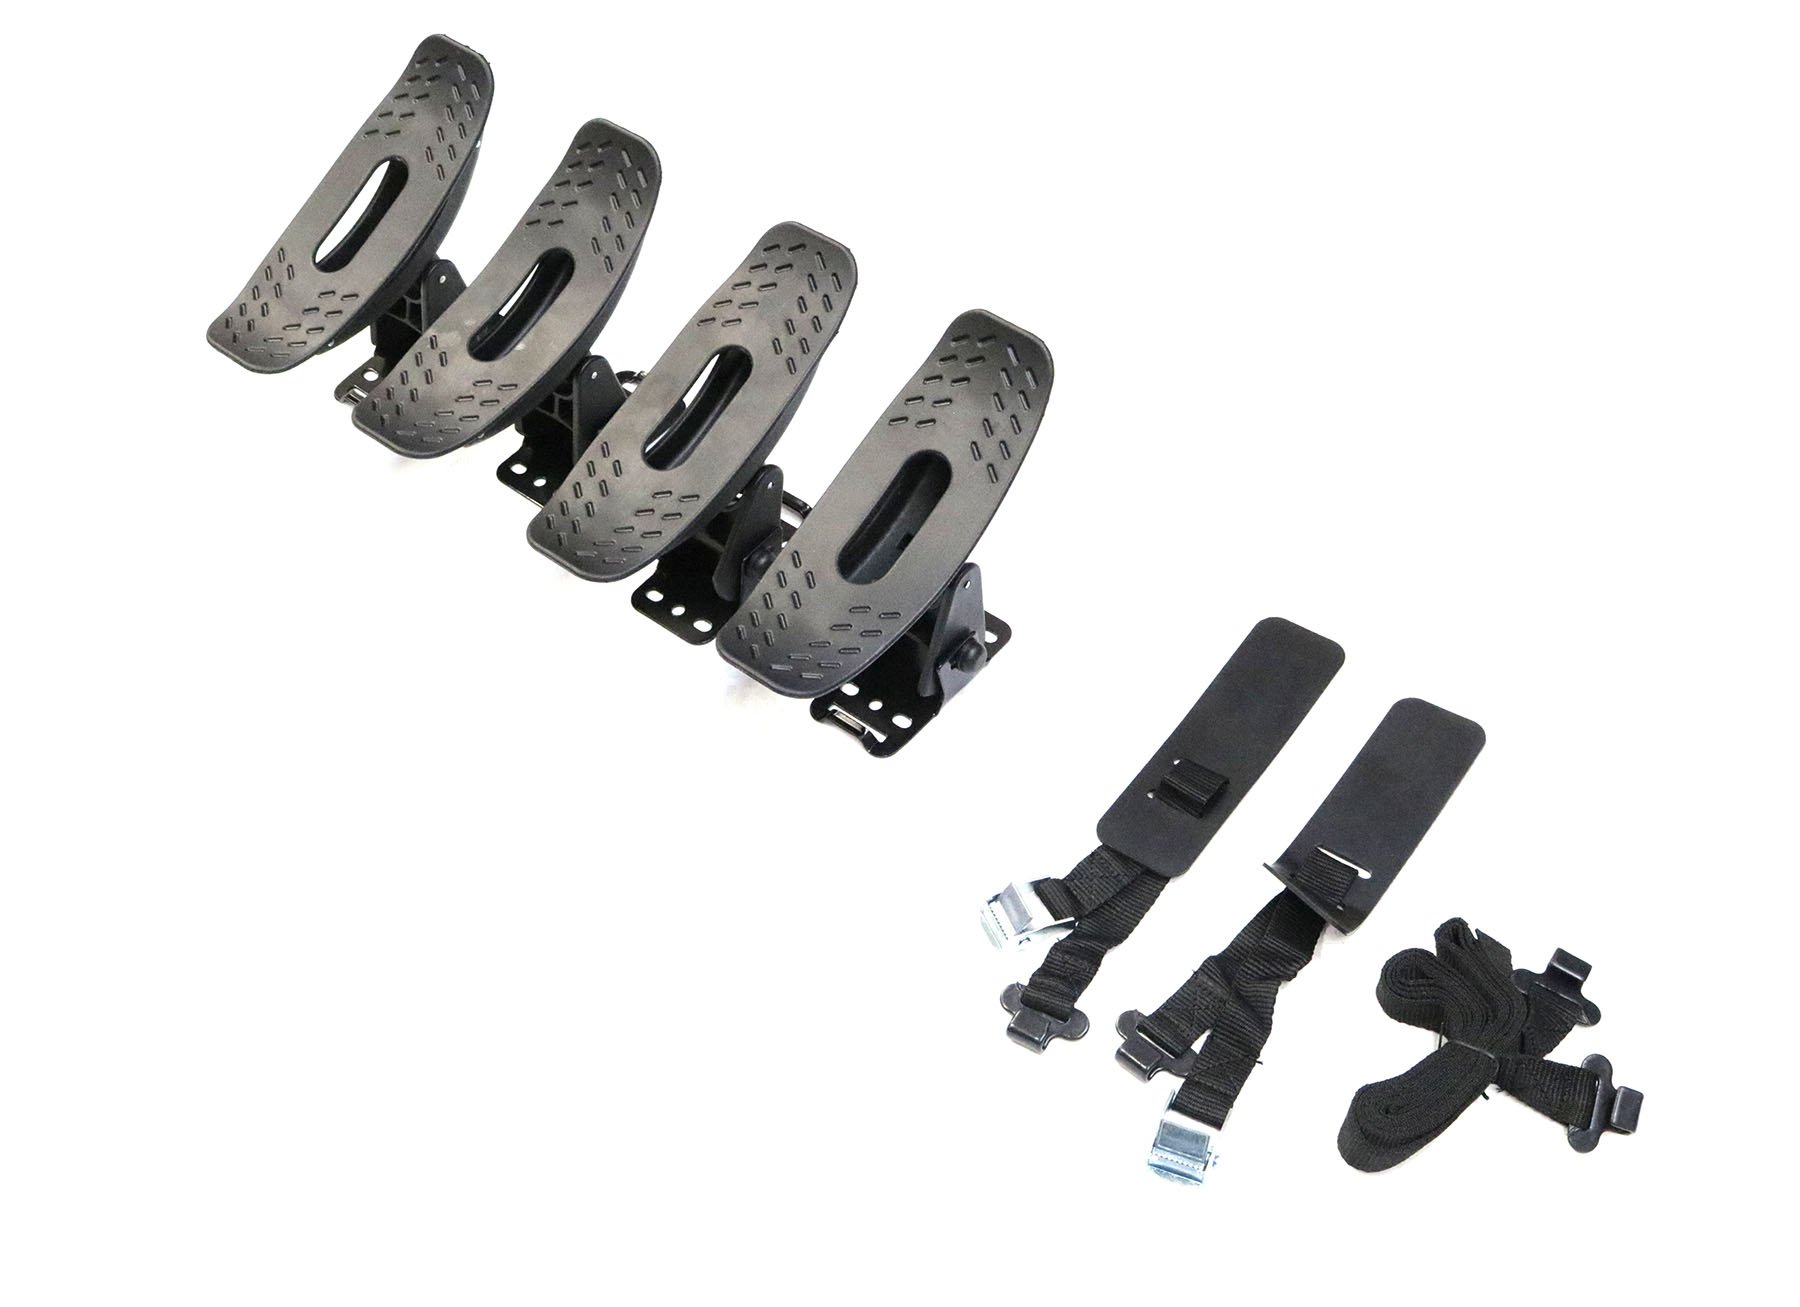 TMB Universal Dual Kayak Mounting System V1 fits most Vehicles Equipped with Cross Bars by TMB